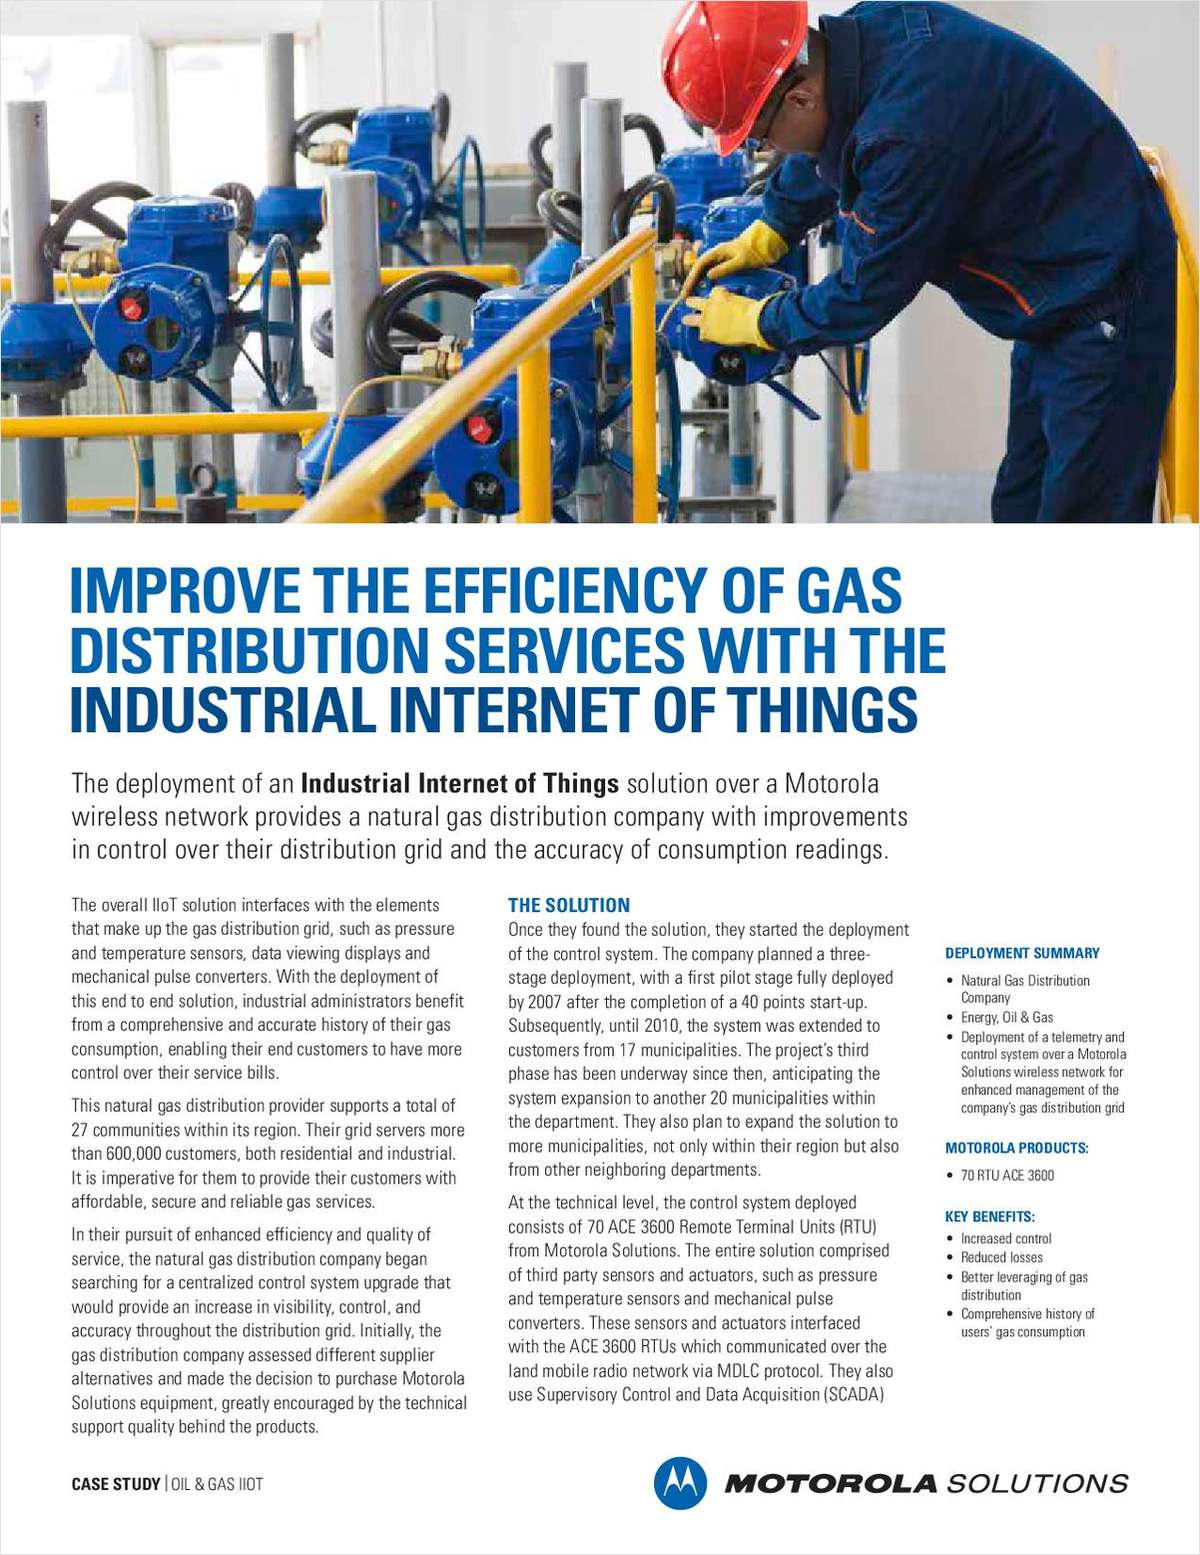 Improve the Efficiency of Gas Distribution Services With the Industrial Internet of Things